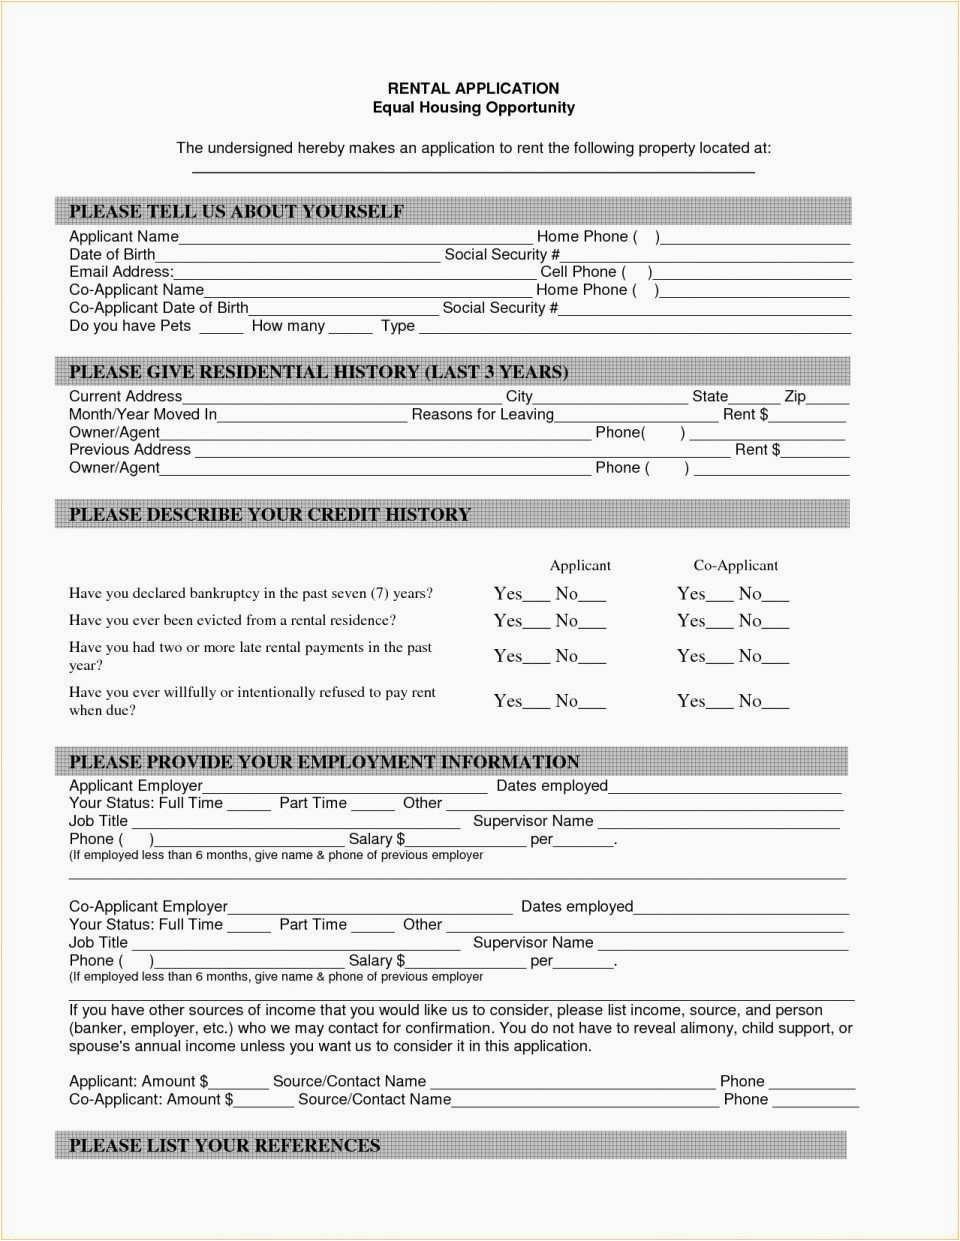 Medicare Part D Prior Authorization Form Format Medicare Application Form ] Format